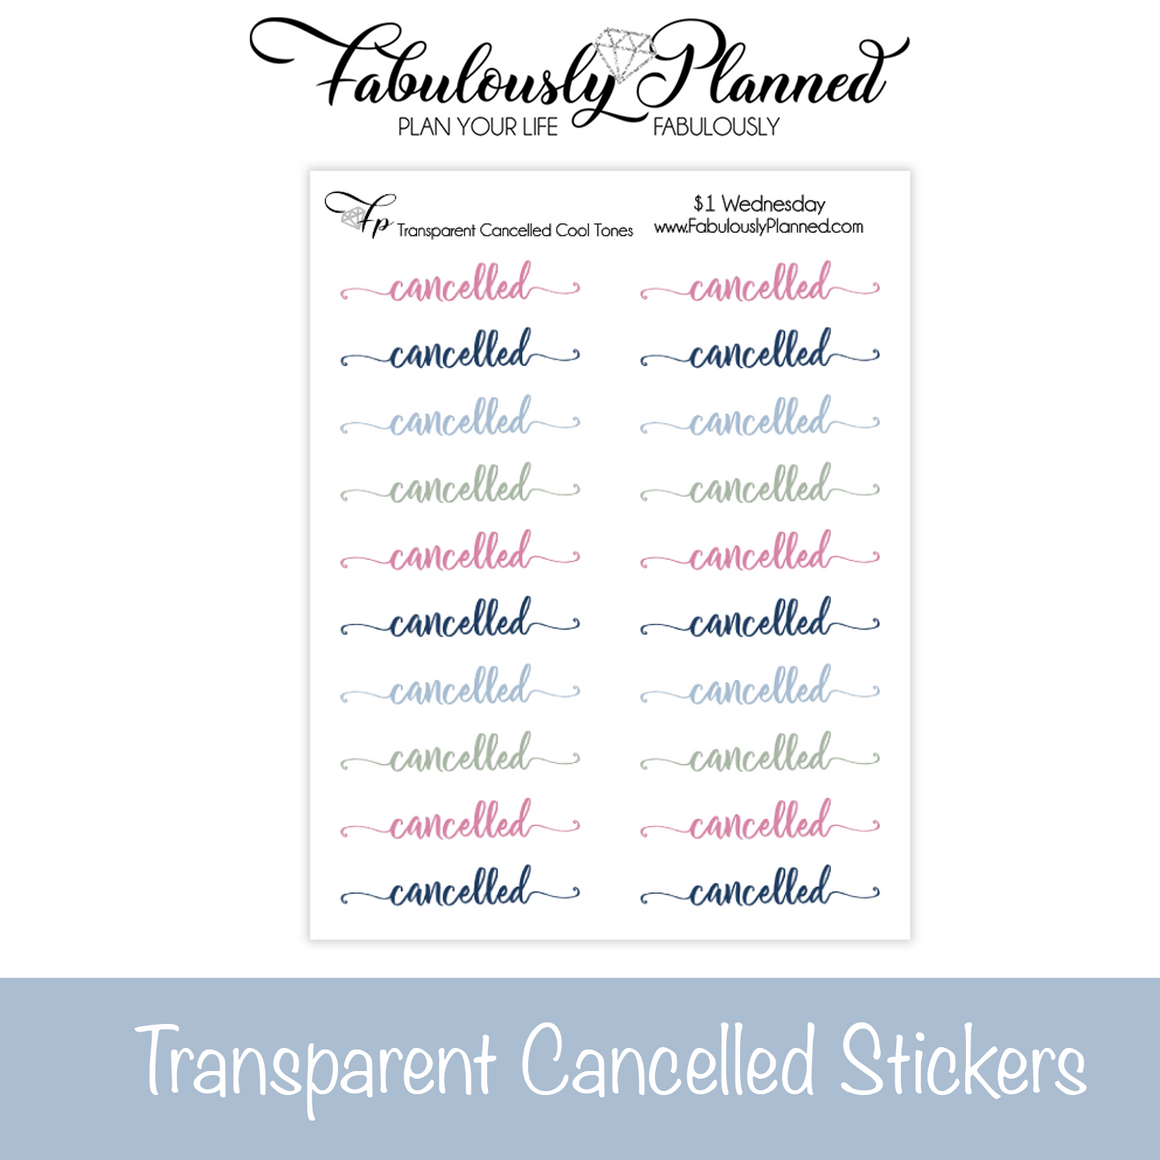 Transparent Cancelled Cool Tones Stickers